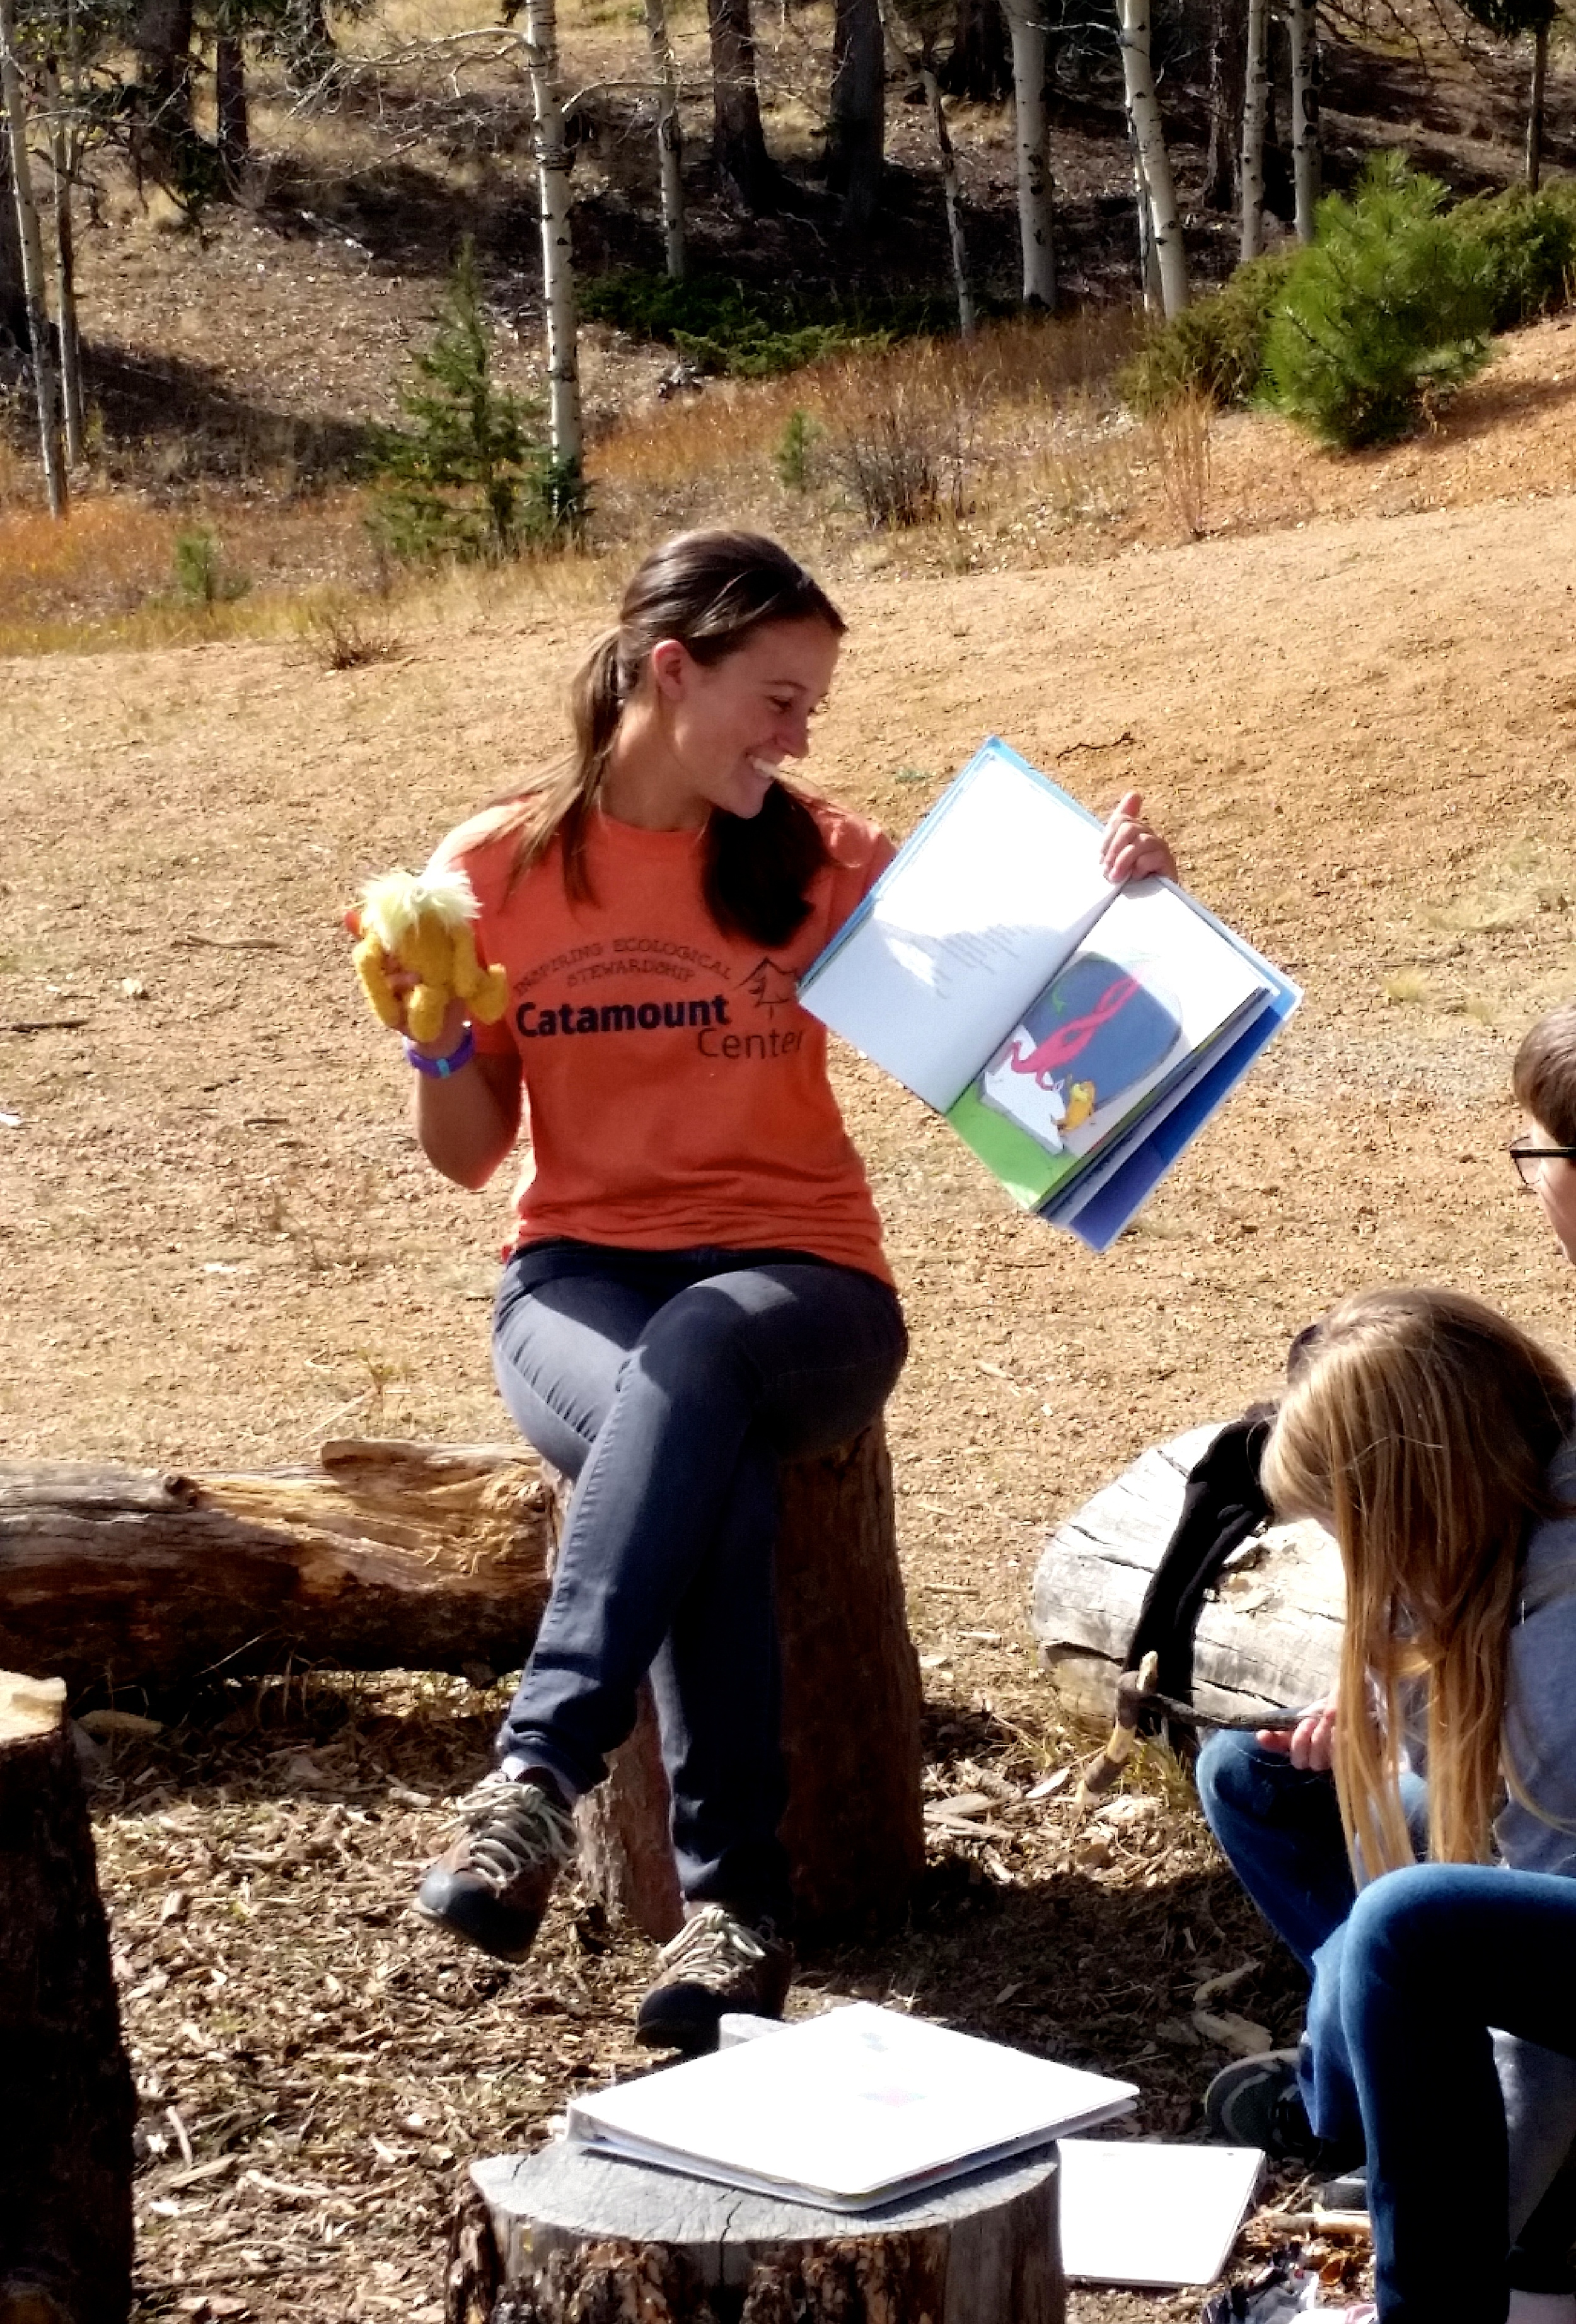 Skills include dramatic readings of The Lorax with the Lorax himself. Catamount Center, 2015.